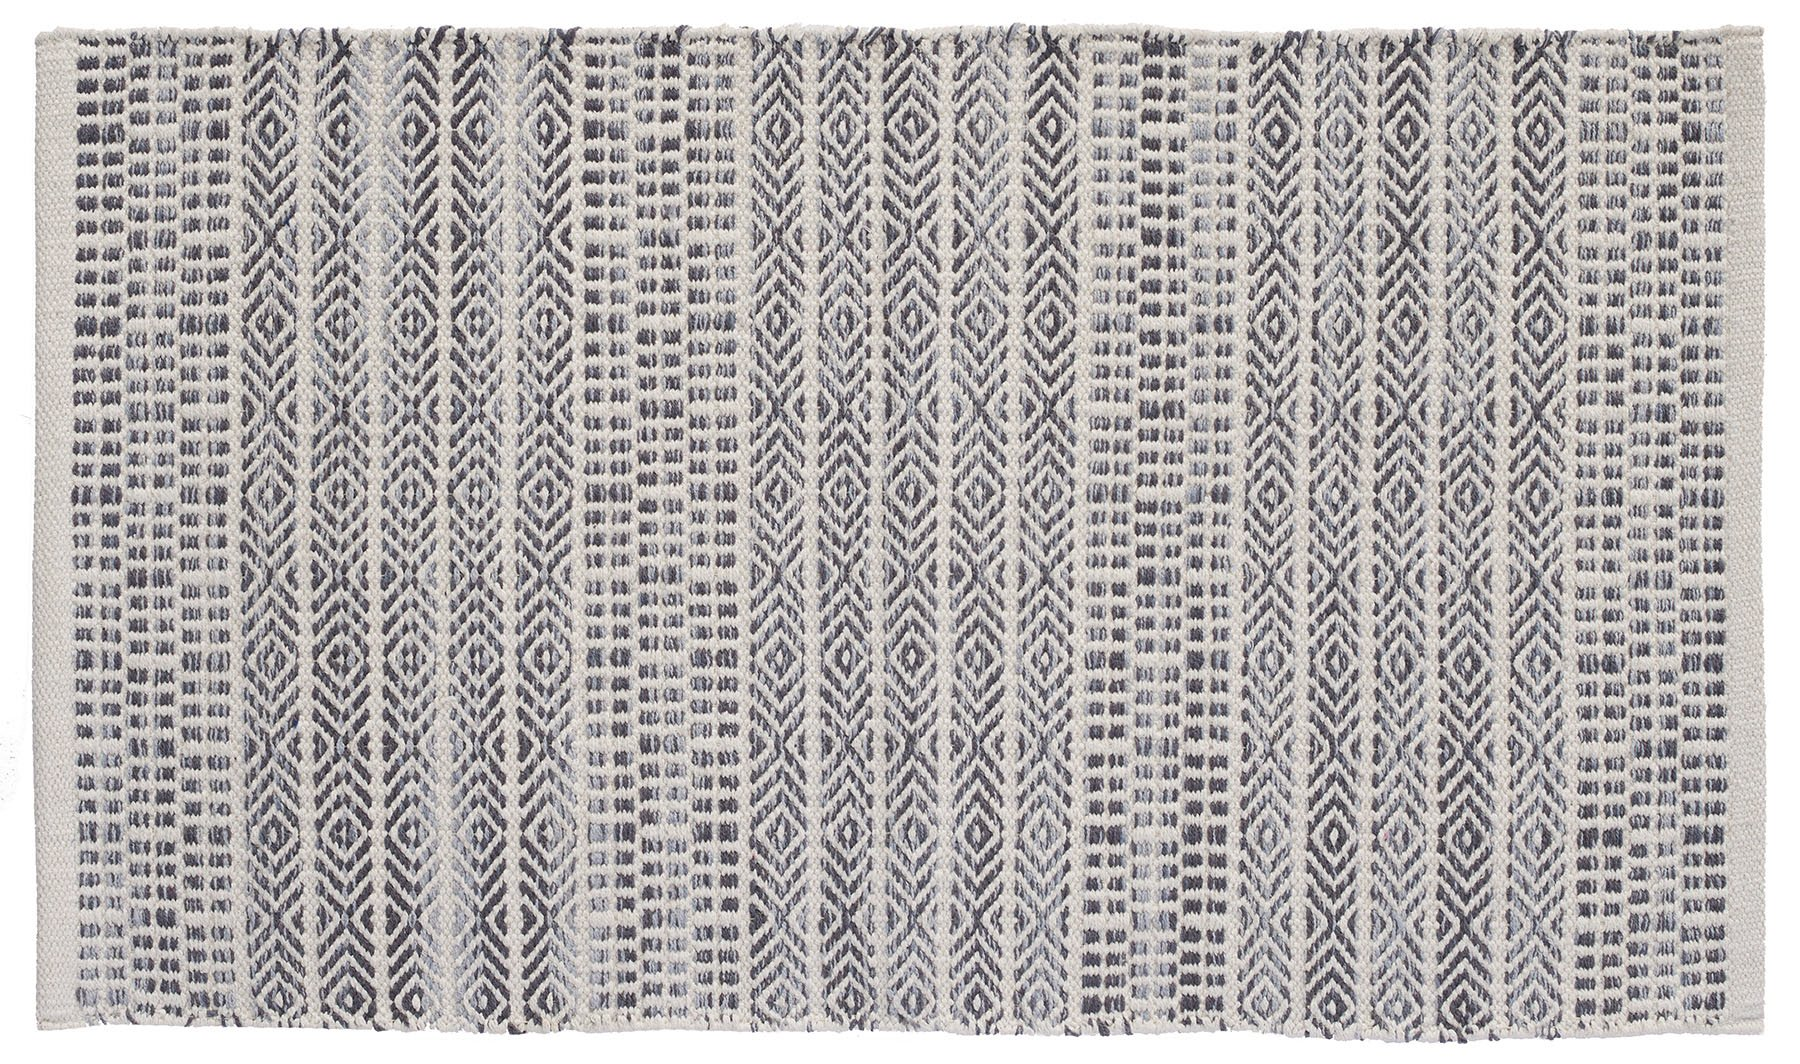 HF by LT Handwoven Sahara Jacquard Rug, 27'' x 45'', Natural and Grey by HOME FURNISHINGS BY LARRY TRAVERSO (Image #1)